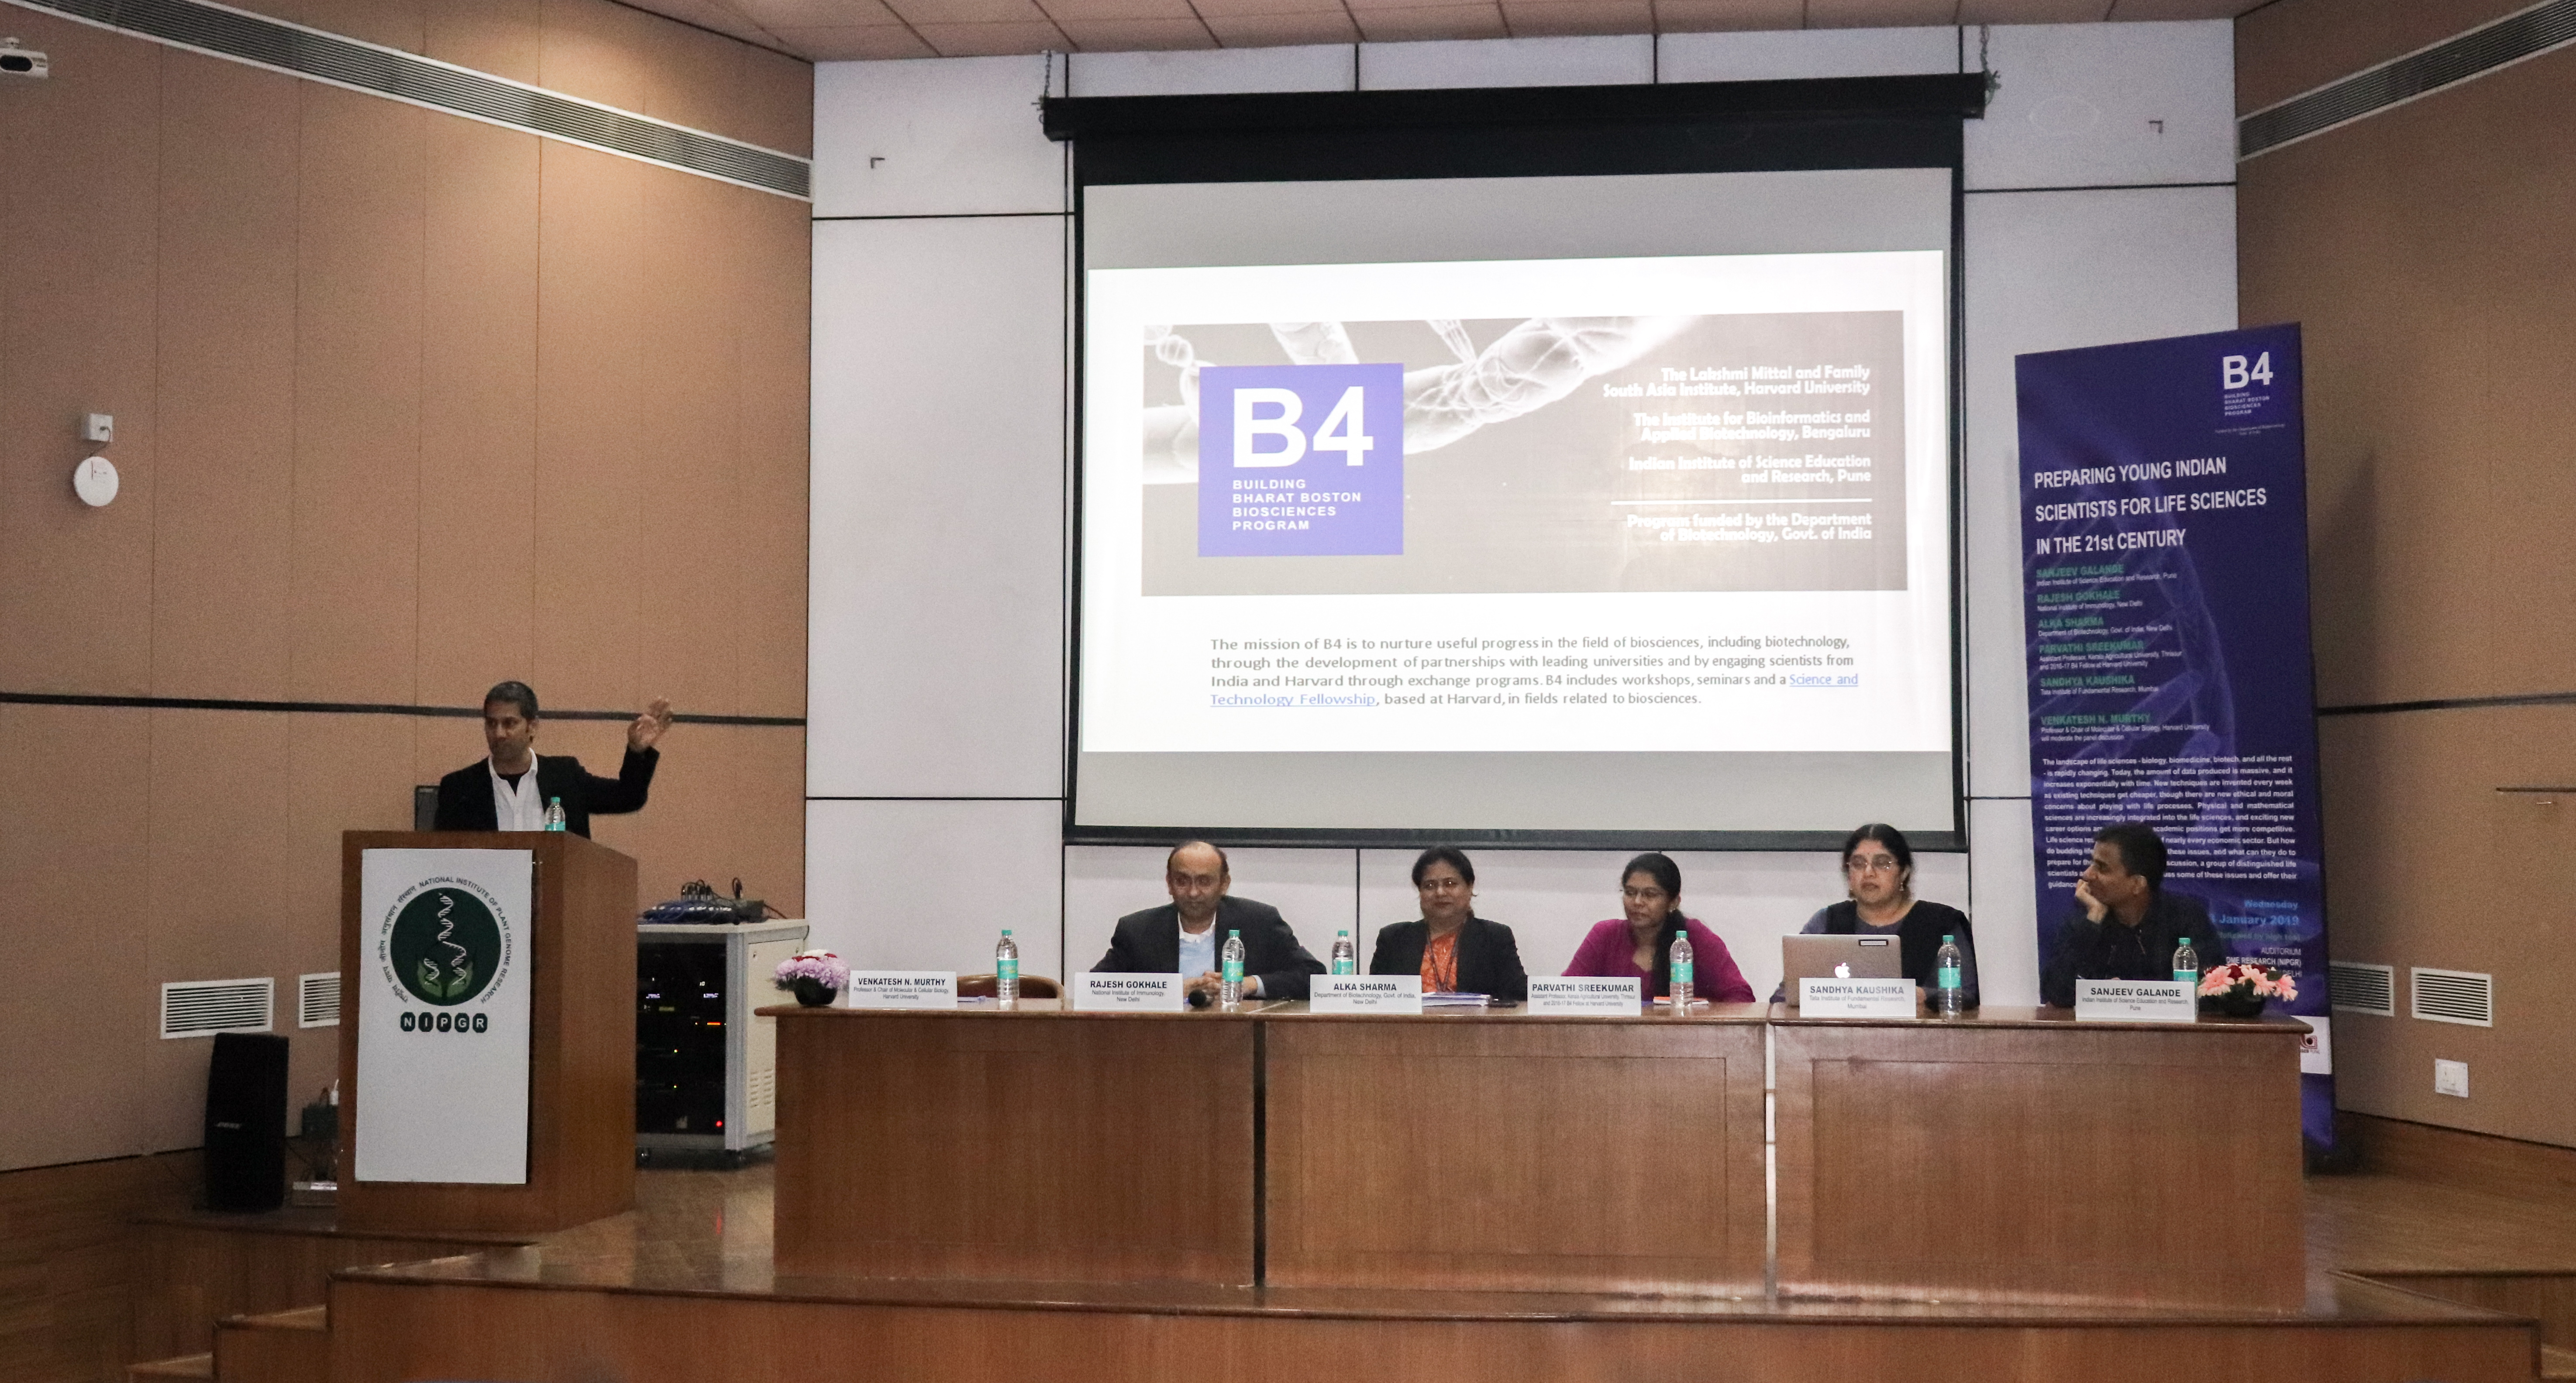 Panelists at the B4 Young Scientists seminar discussing the future of life sciences.